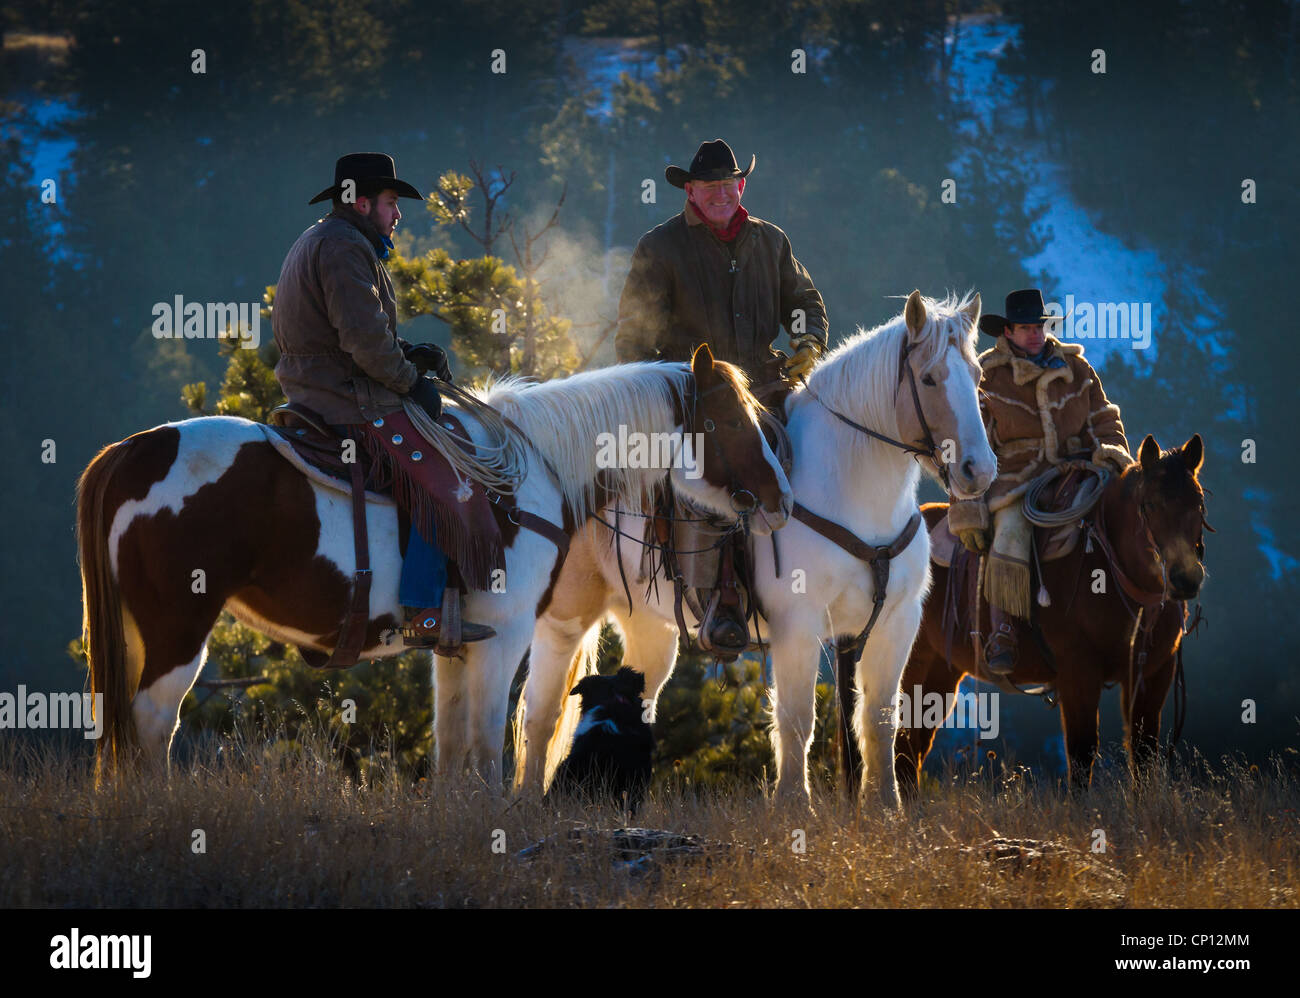 Cowboys on horseback in northeastern Wyoming - Stock Image